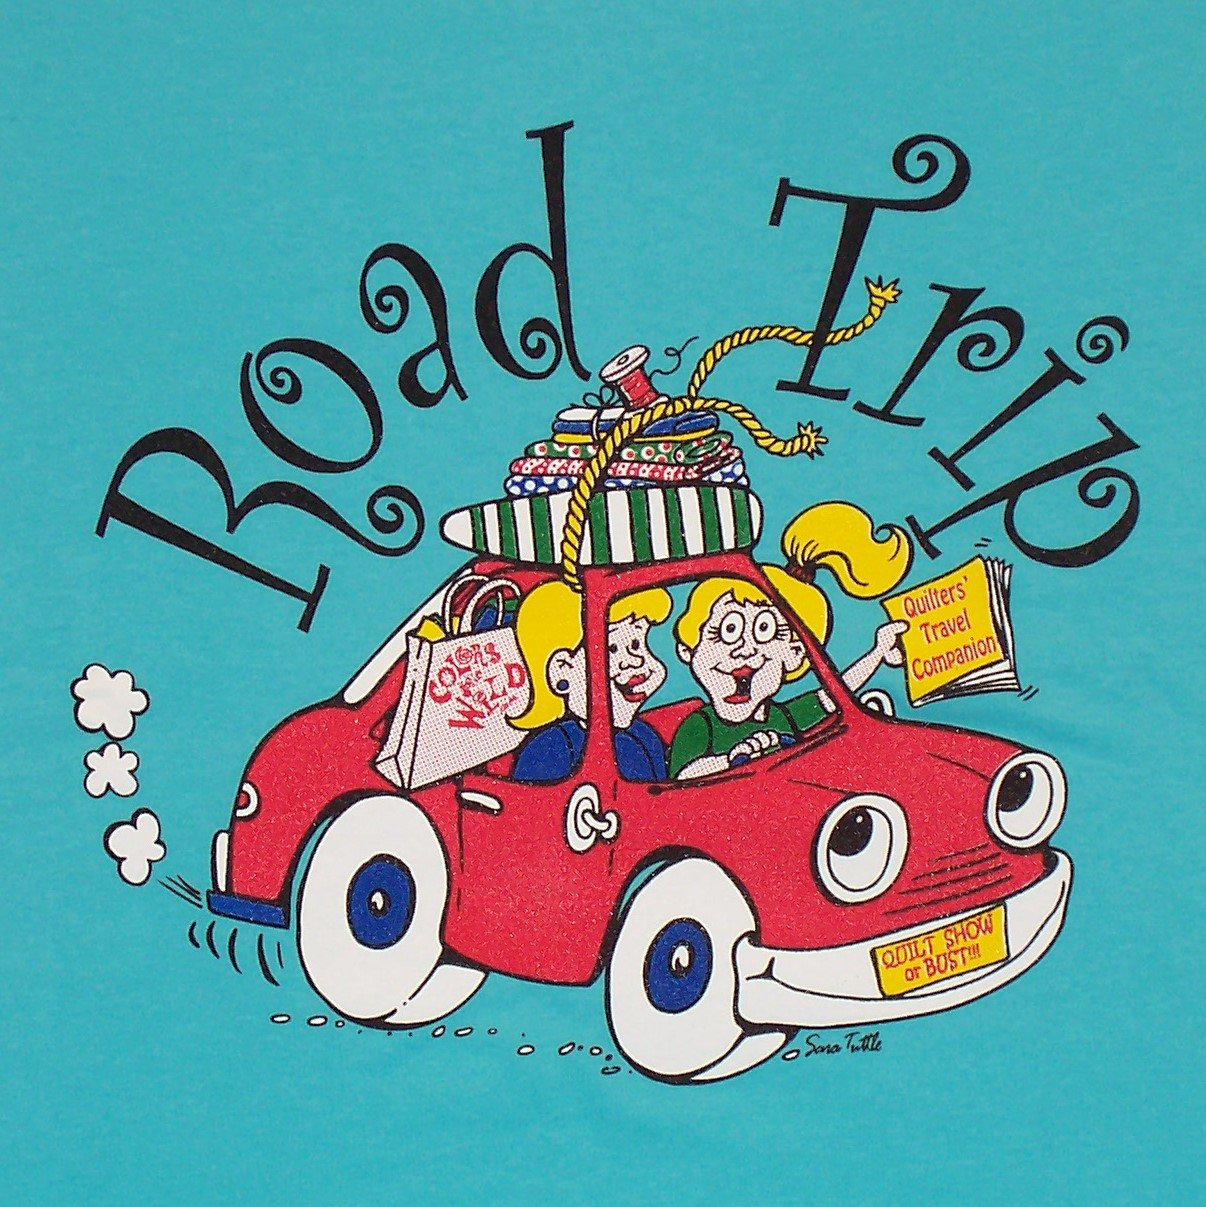 quilt shop road trip t-shirt